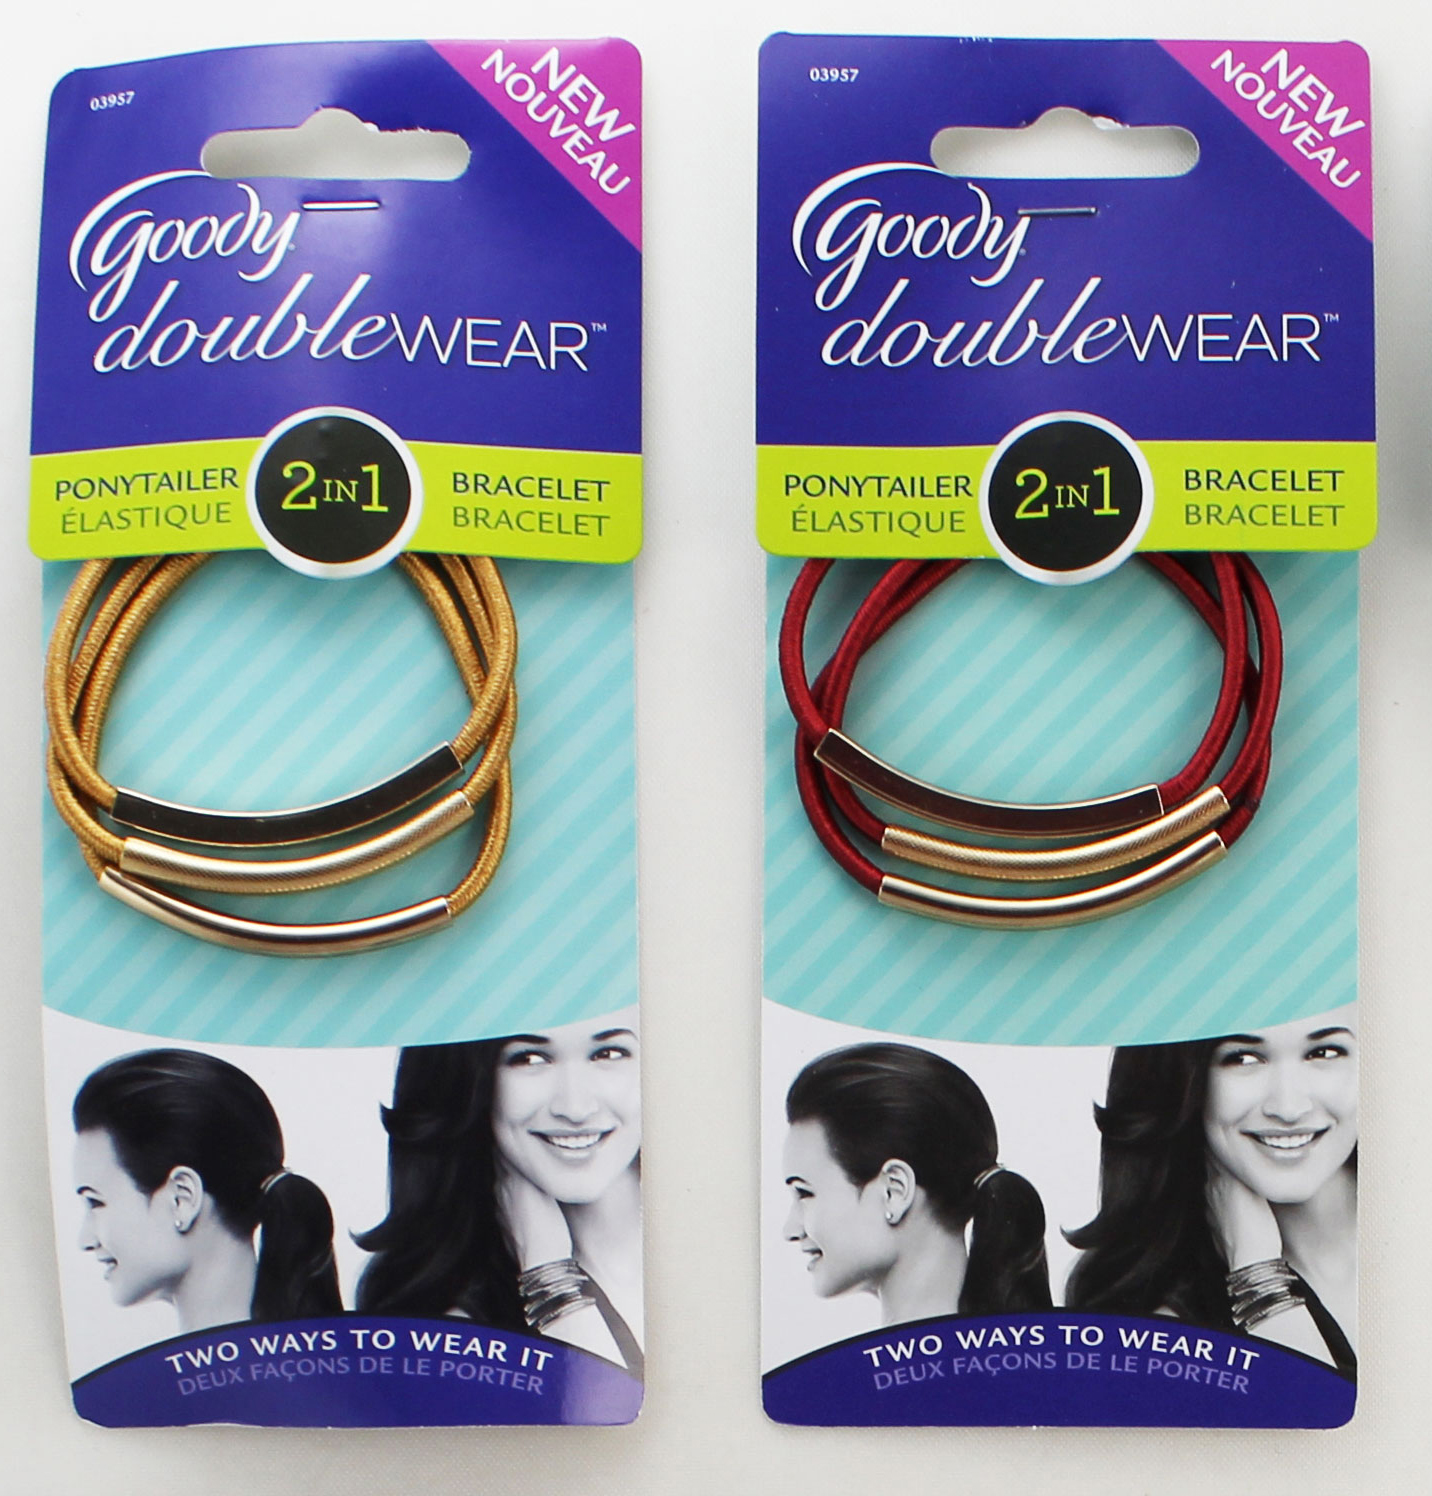 Goody DoubleWear Elastic/Bracelet Combo in Red and Gold